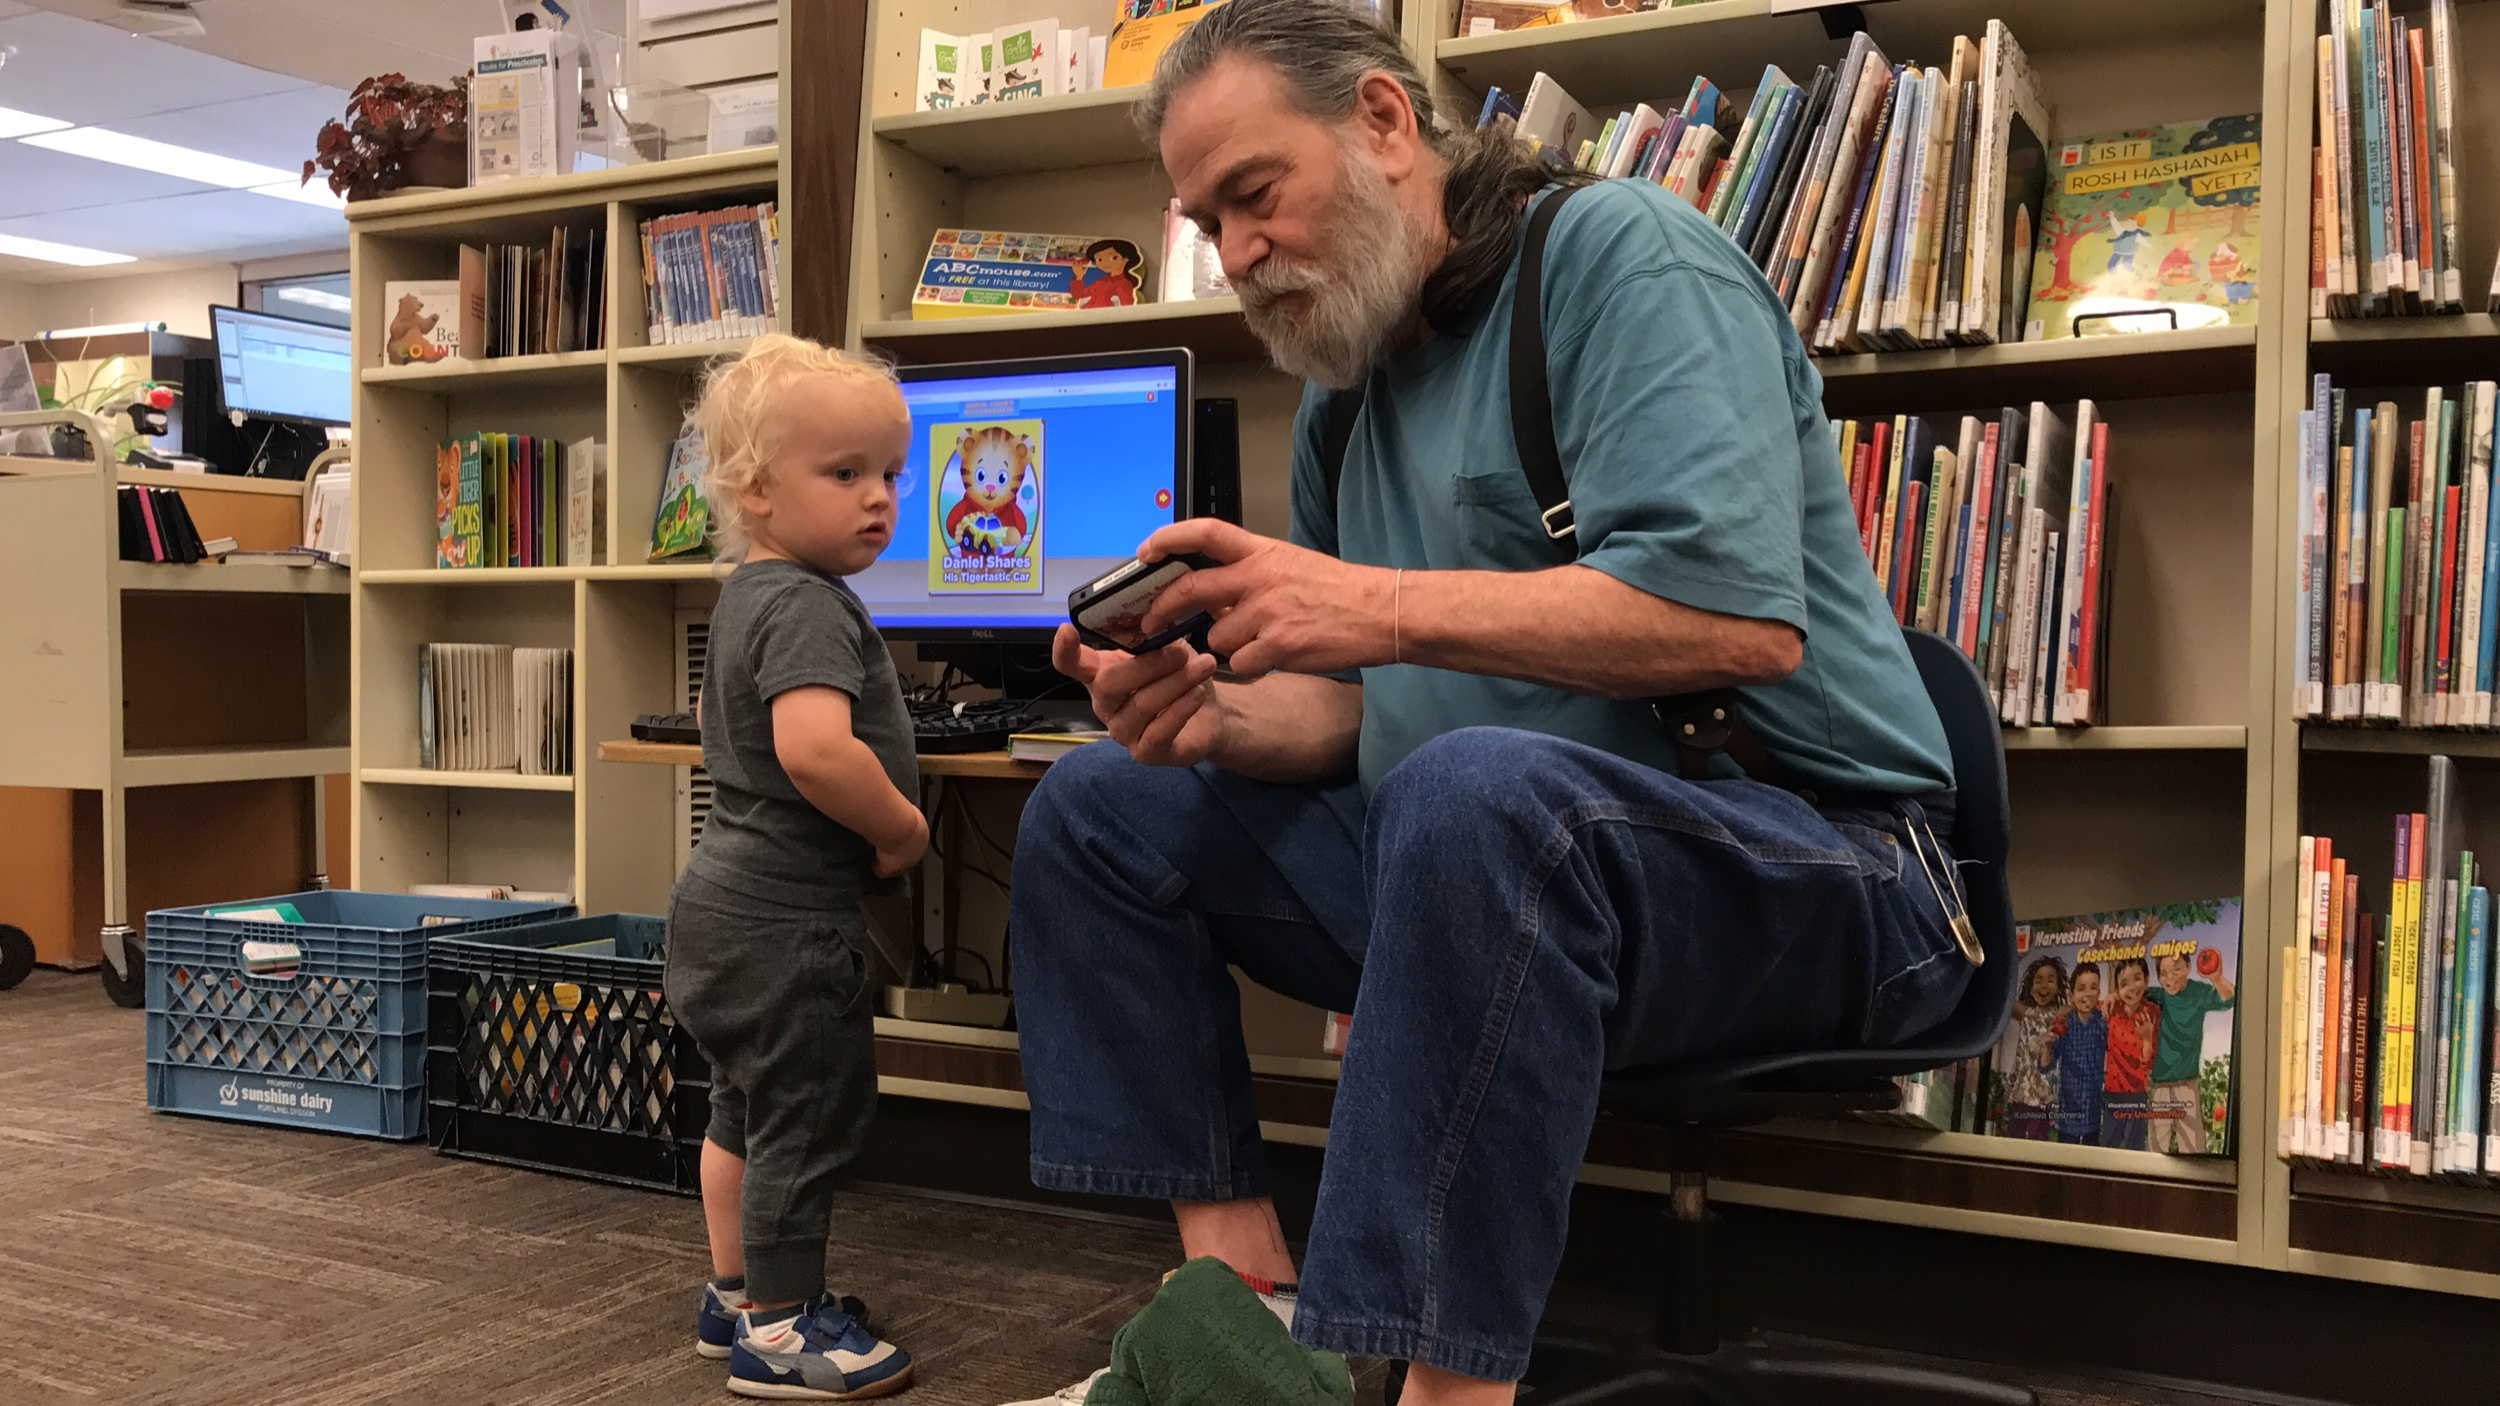 A Washougal Community Library worker with a burly beard assists a toddler-age male patron in the children's section.